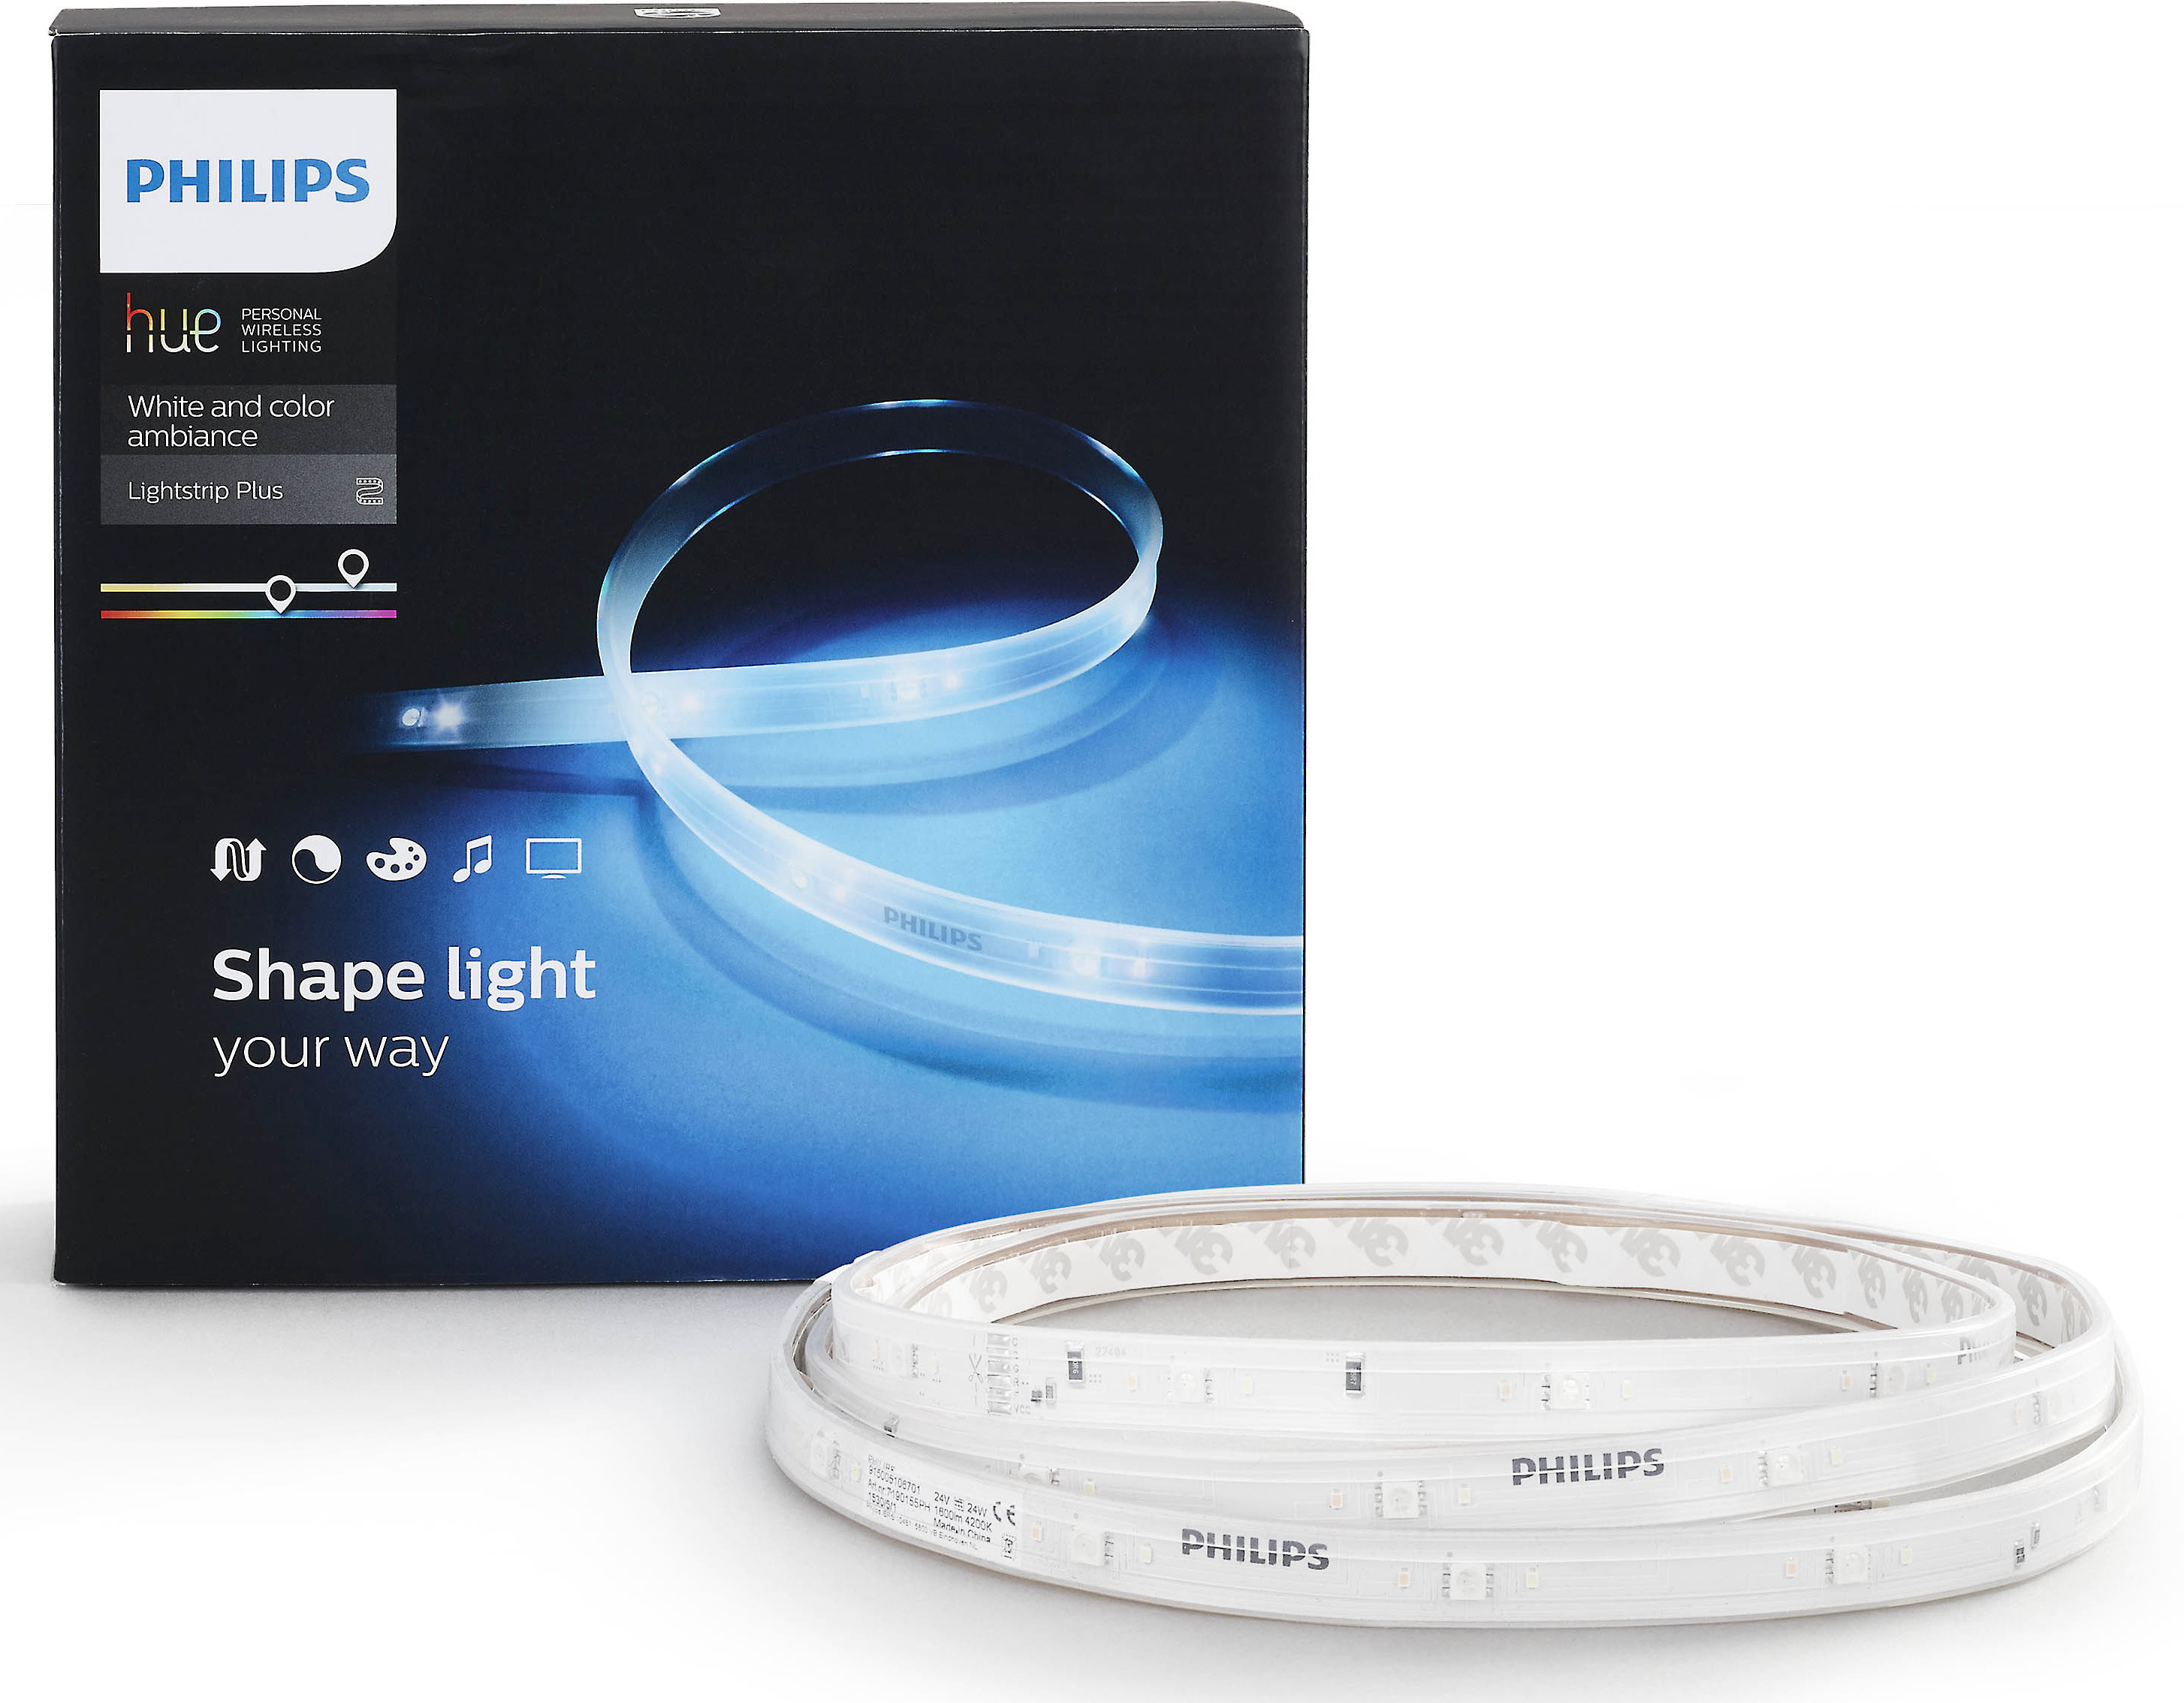 Philips Hue Led Lightstrip Plus Philips Hue Lightstrip Plus